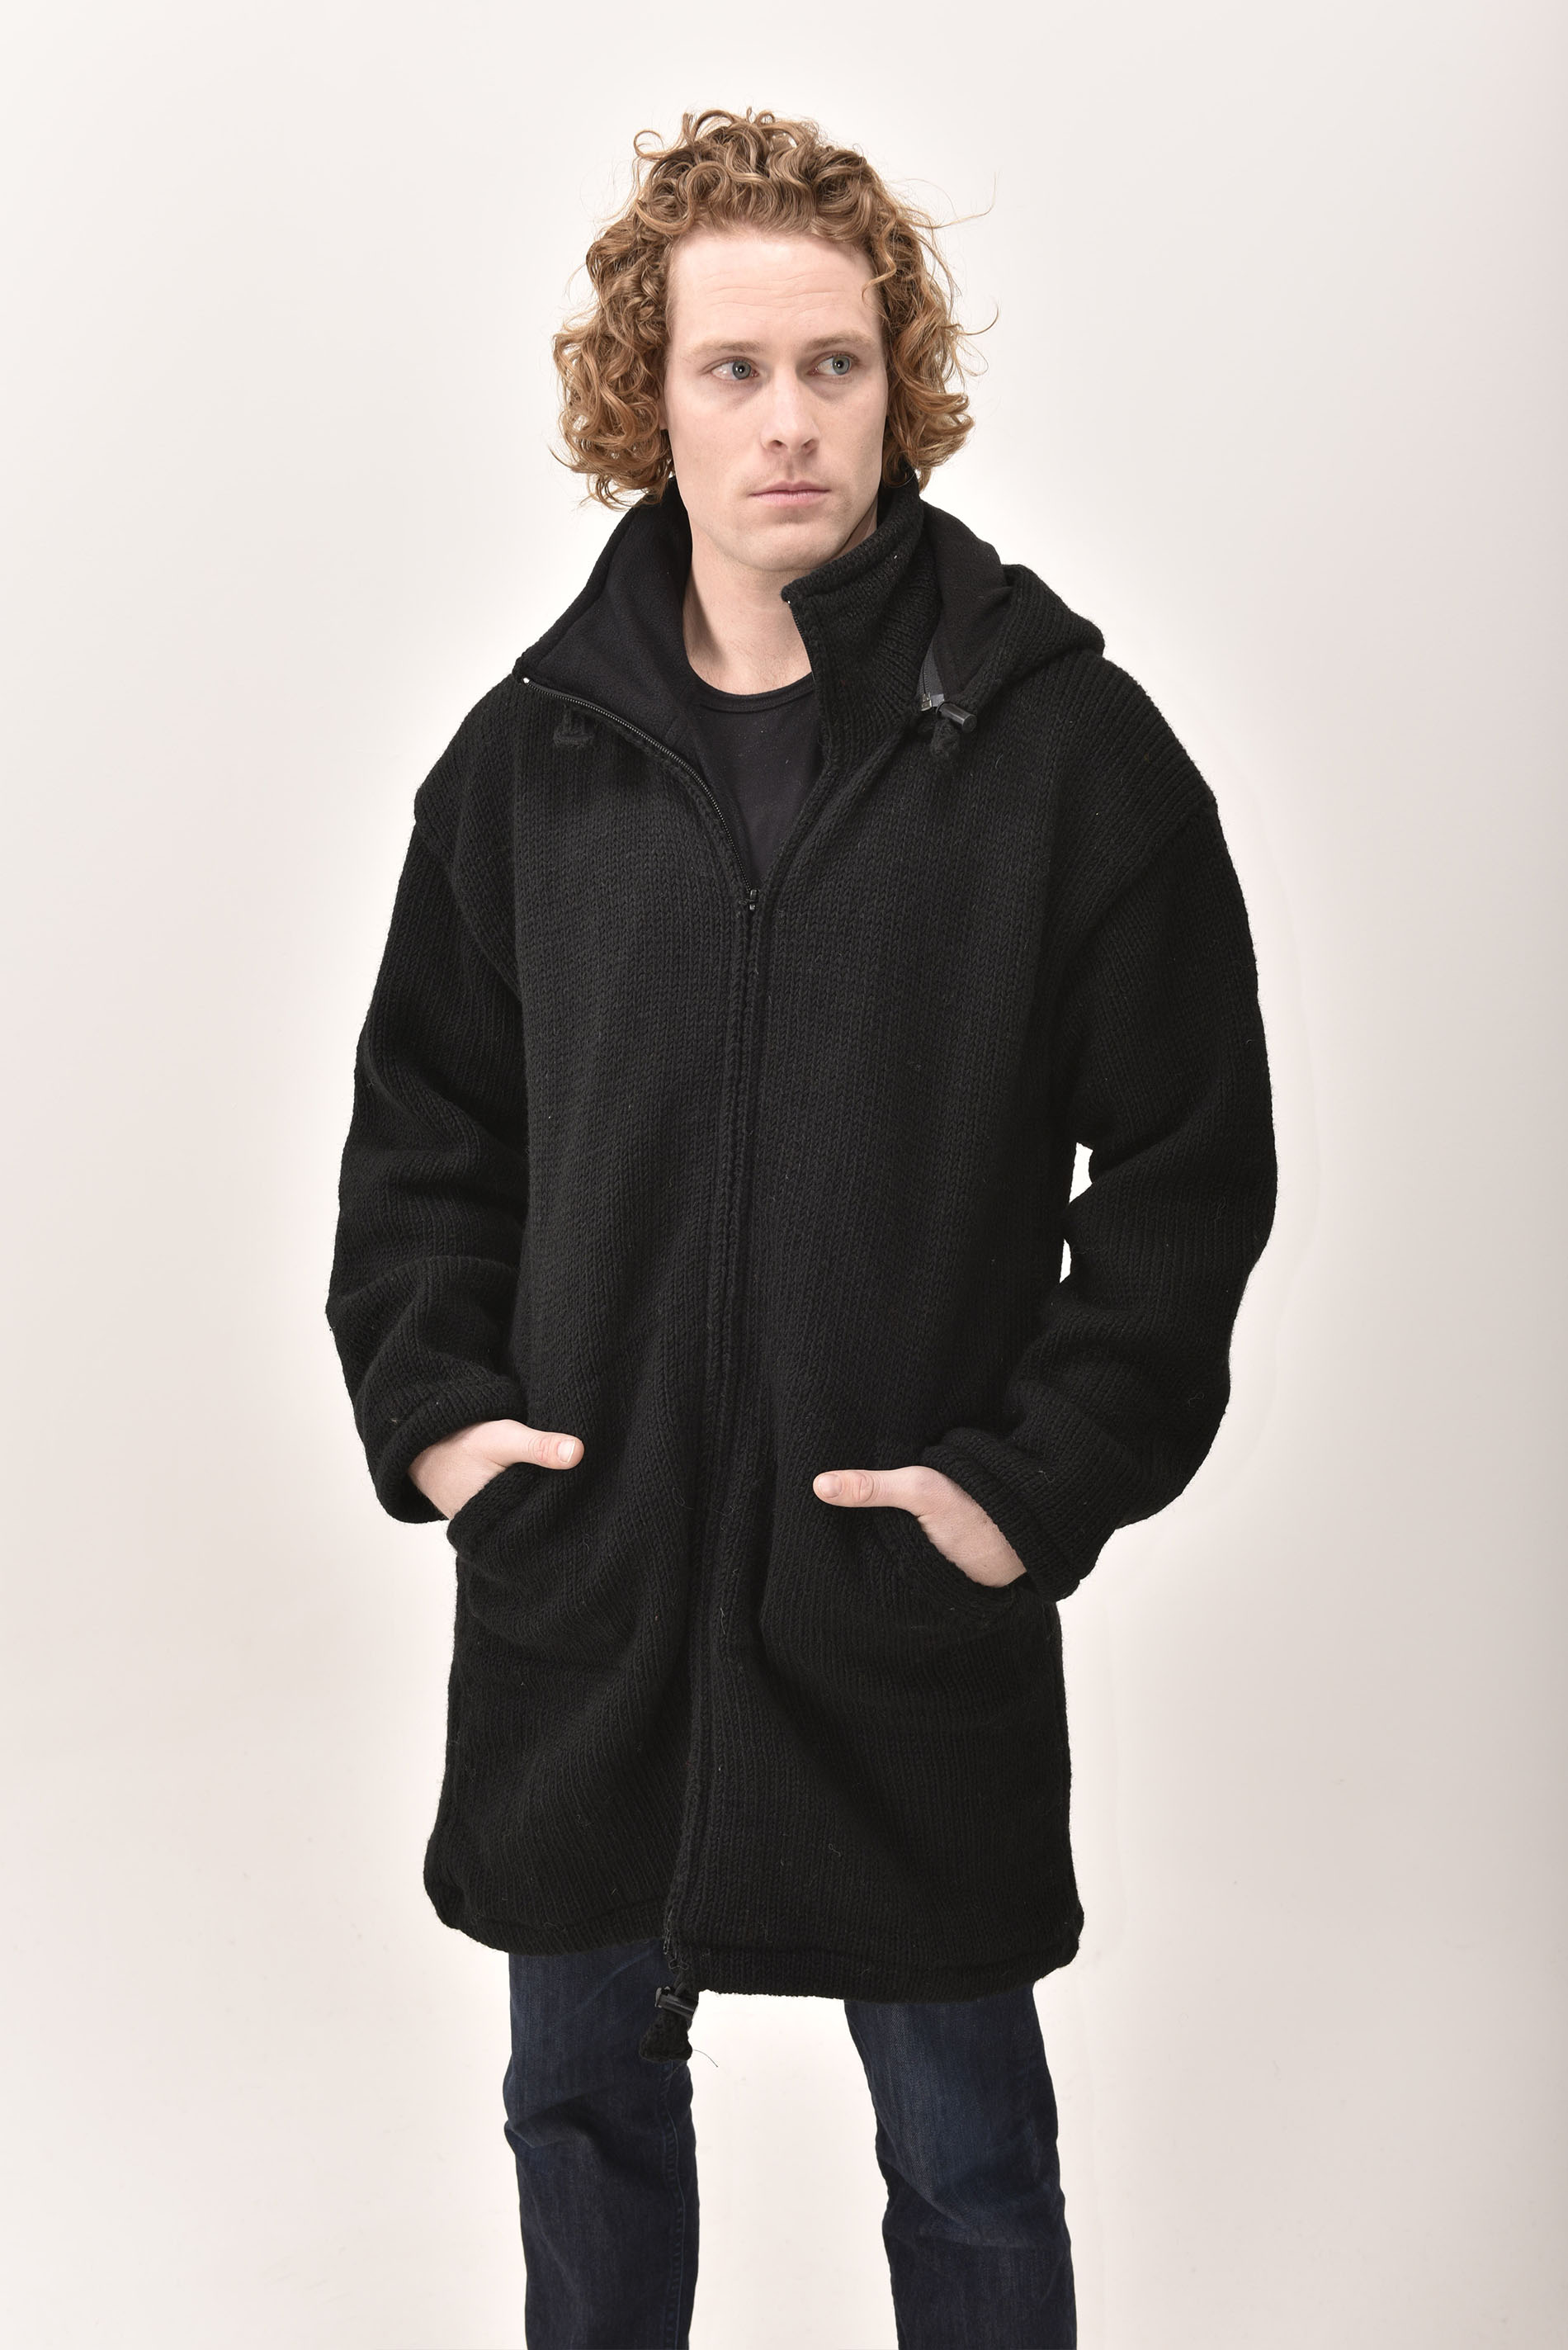 Himalayan Mountain Jacket Long Length, Solid Black